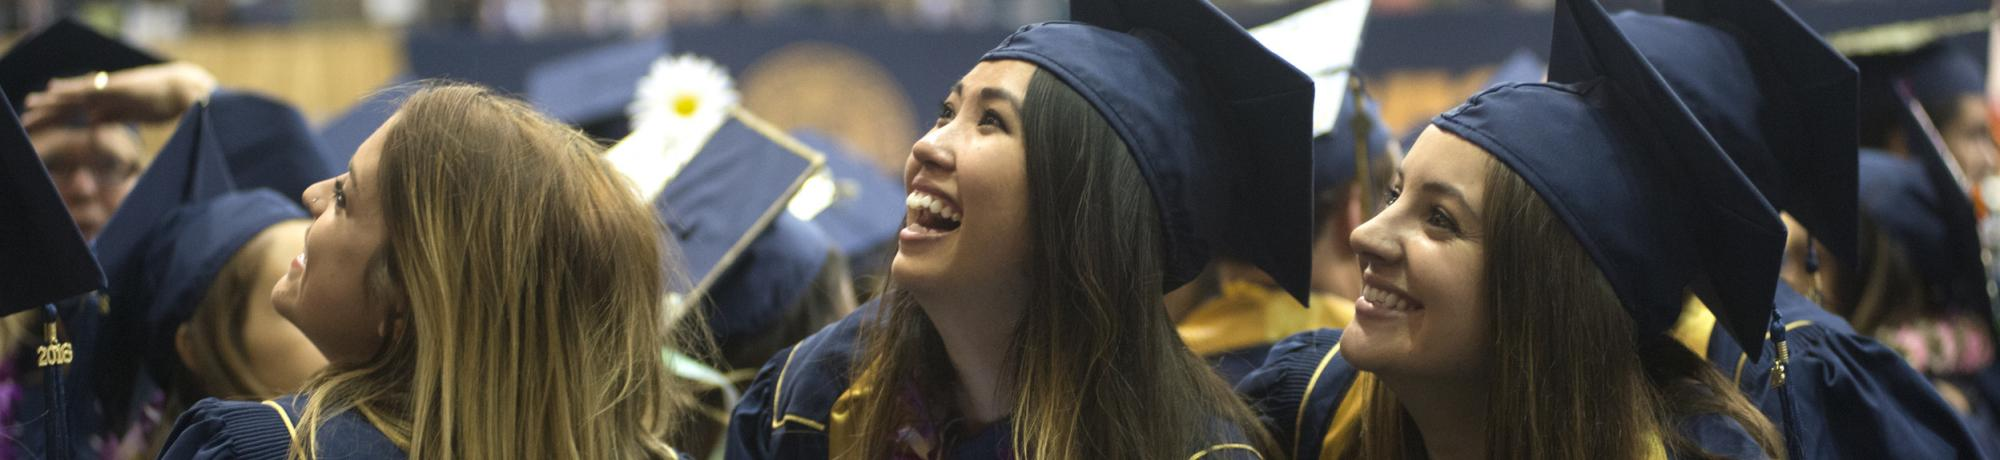 Students call to friends as they walk into the Pavilion during the commencement on Friday June 10, 2016 at UC Davis.